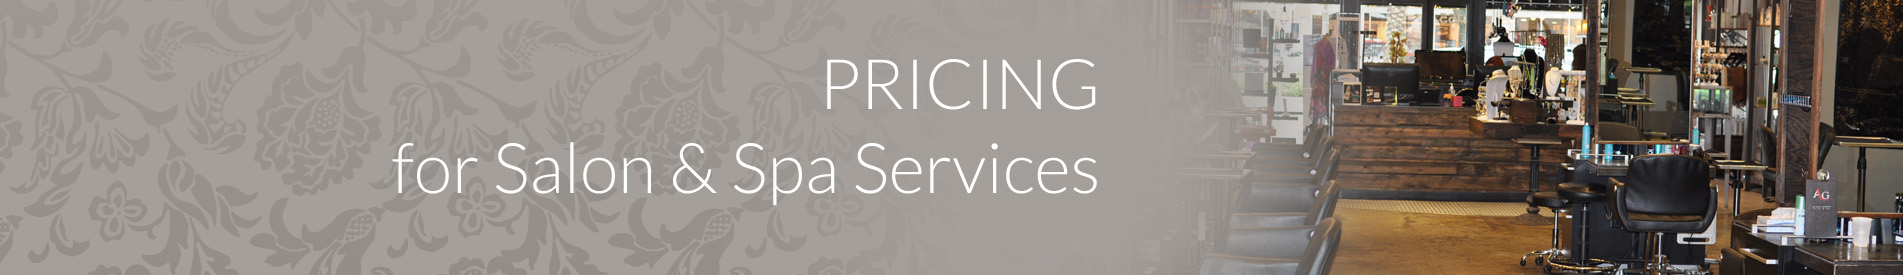 Hair Salon and Nail Spa Pricing